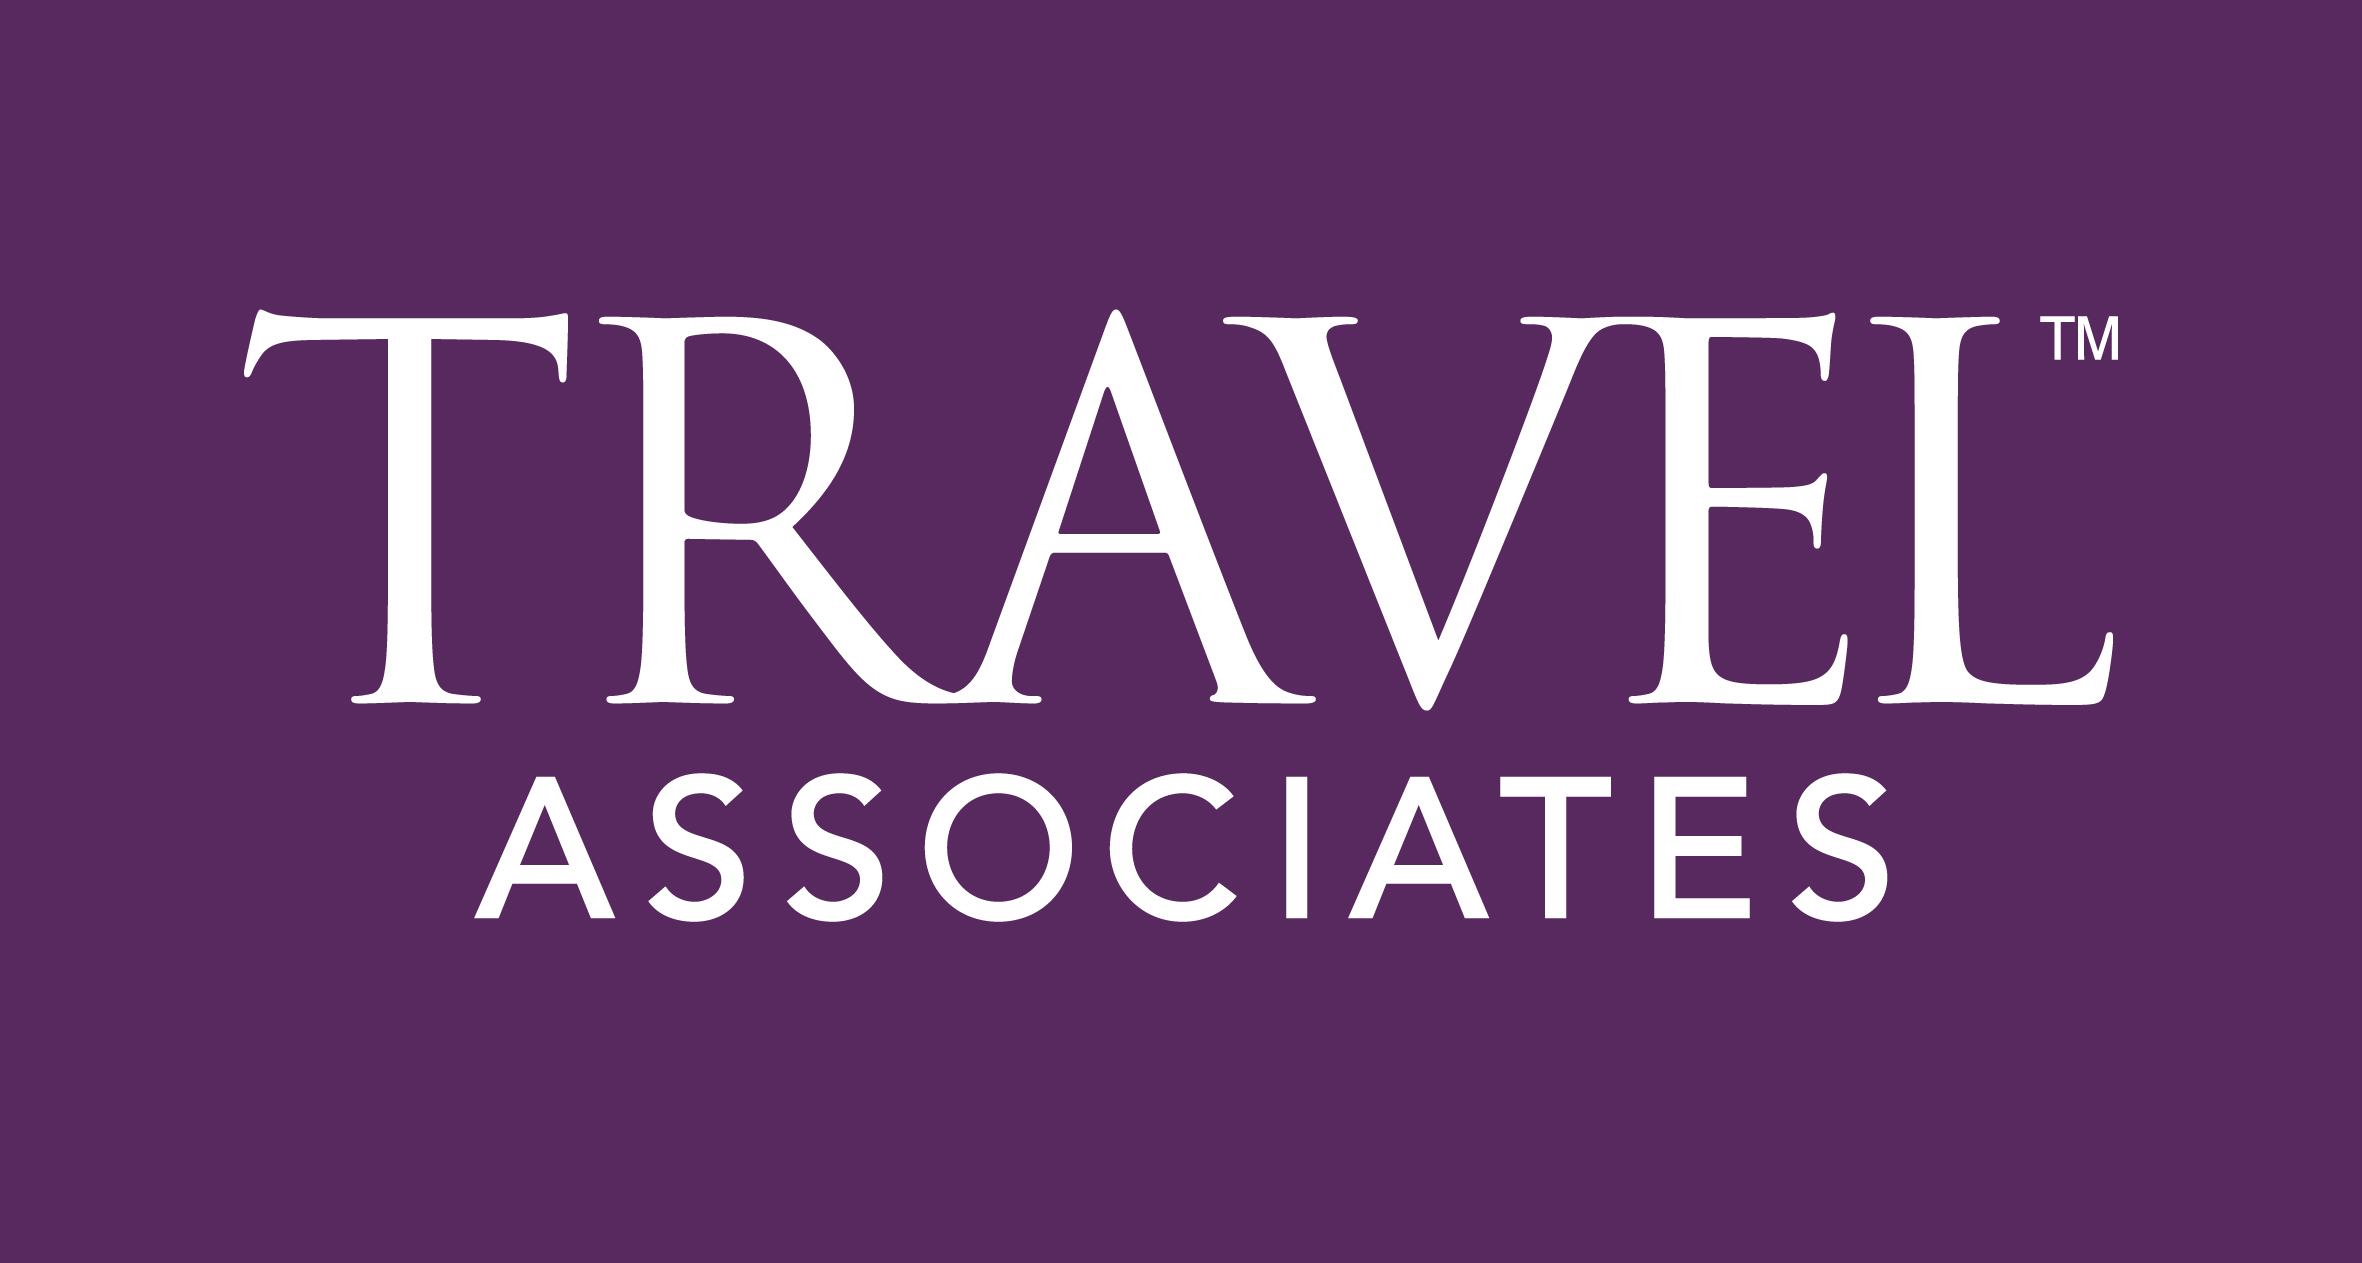 TRAVEL ASSOCIATES Parkinson Logo